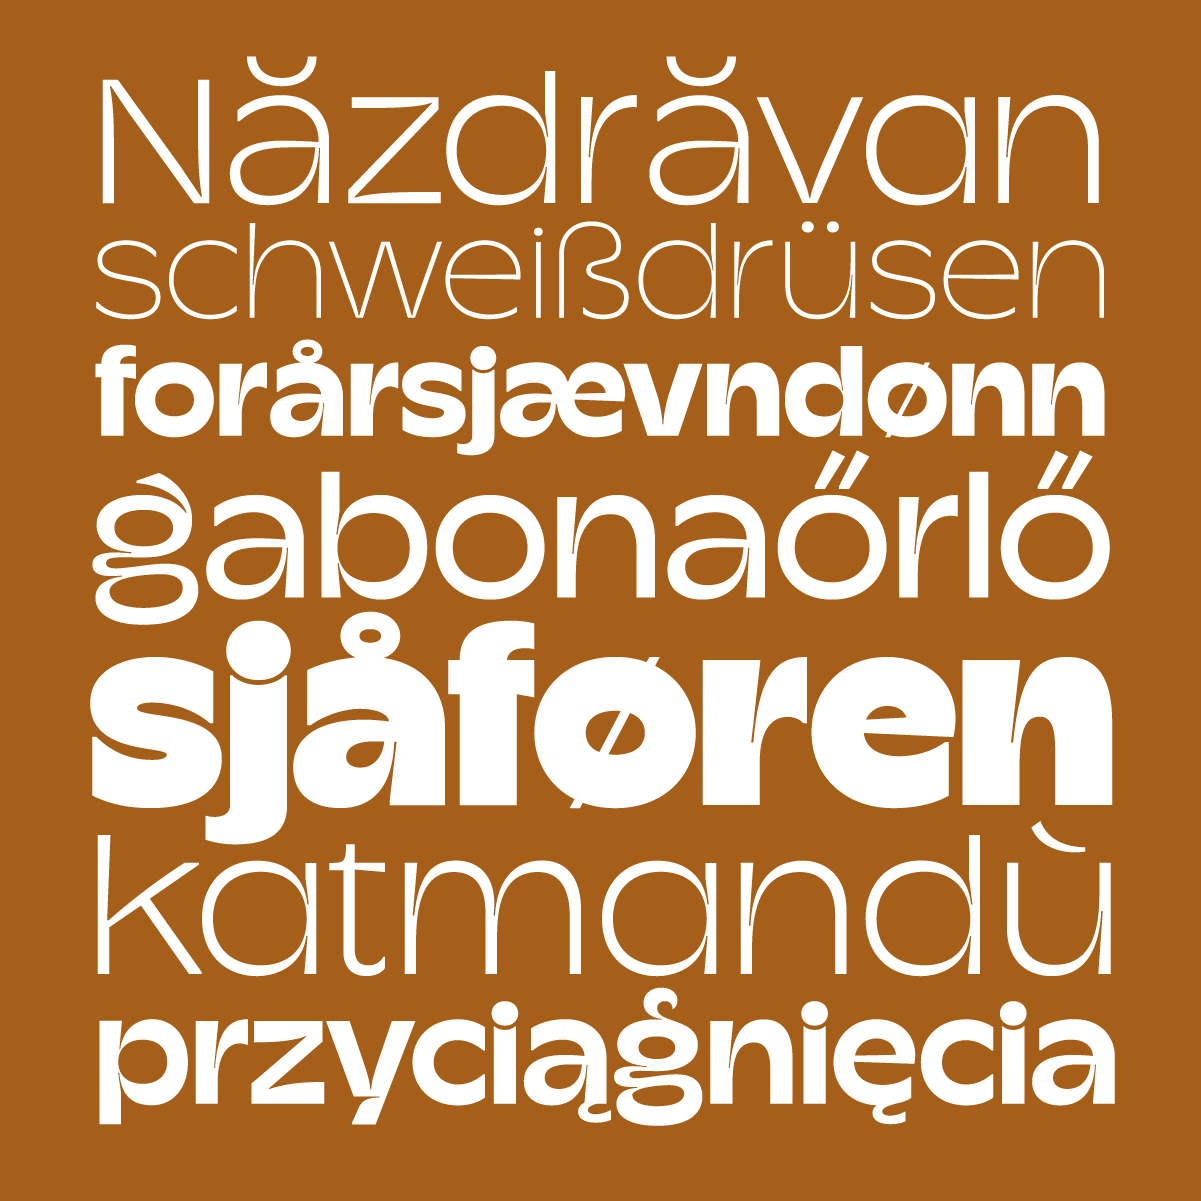 Champ, a new typeface by Cristi Bordeianu and Andrei Robu available on www.typeverything.com